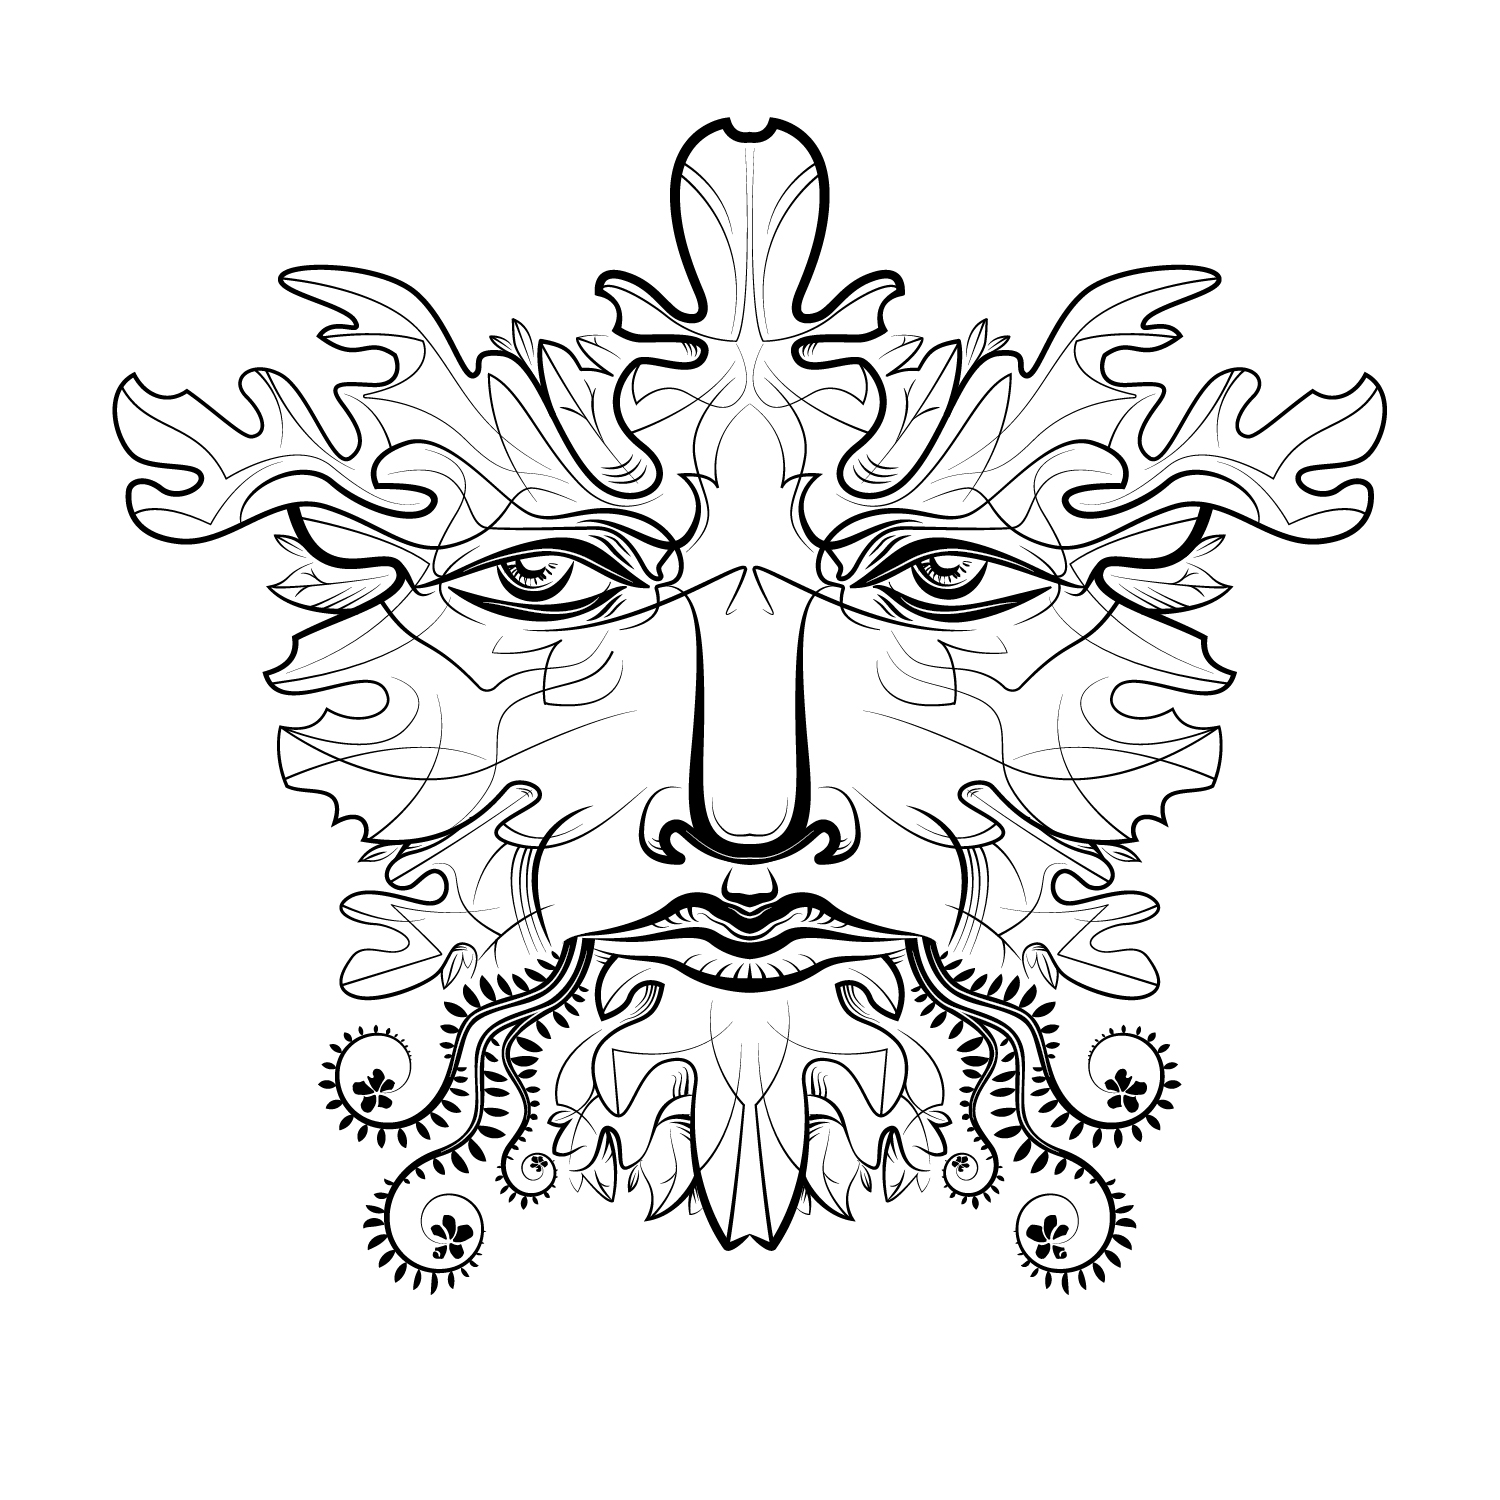 Green Flower Line Drawing : Green man line drawing